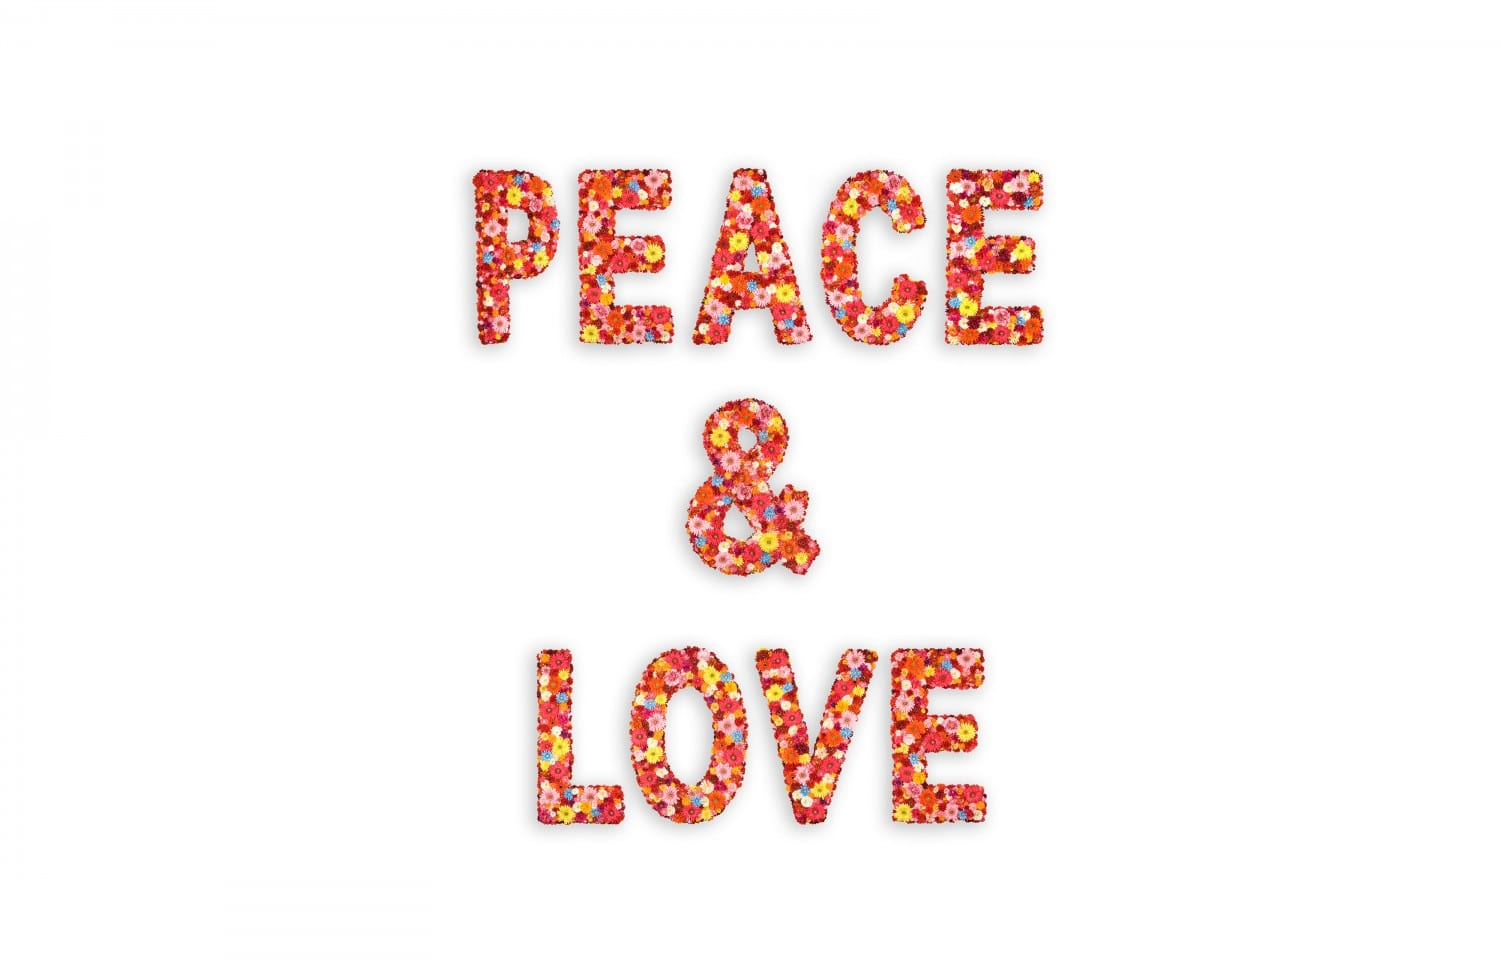 PEACE & LOVE, R & R studios, Roberto Behar & Rosario Marquardt, Miami International Airport, Miami, Georgy John, All we need is Love, Besame Mucho, All Together Now